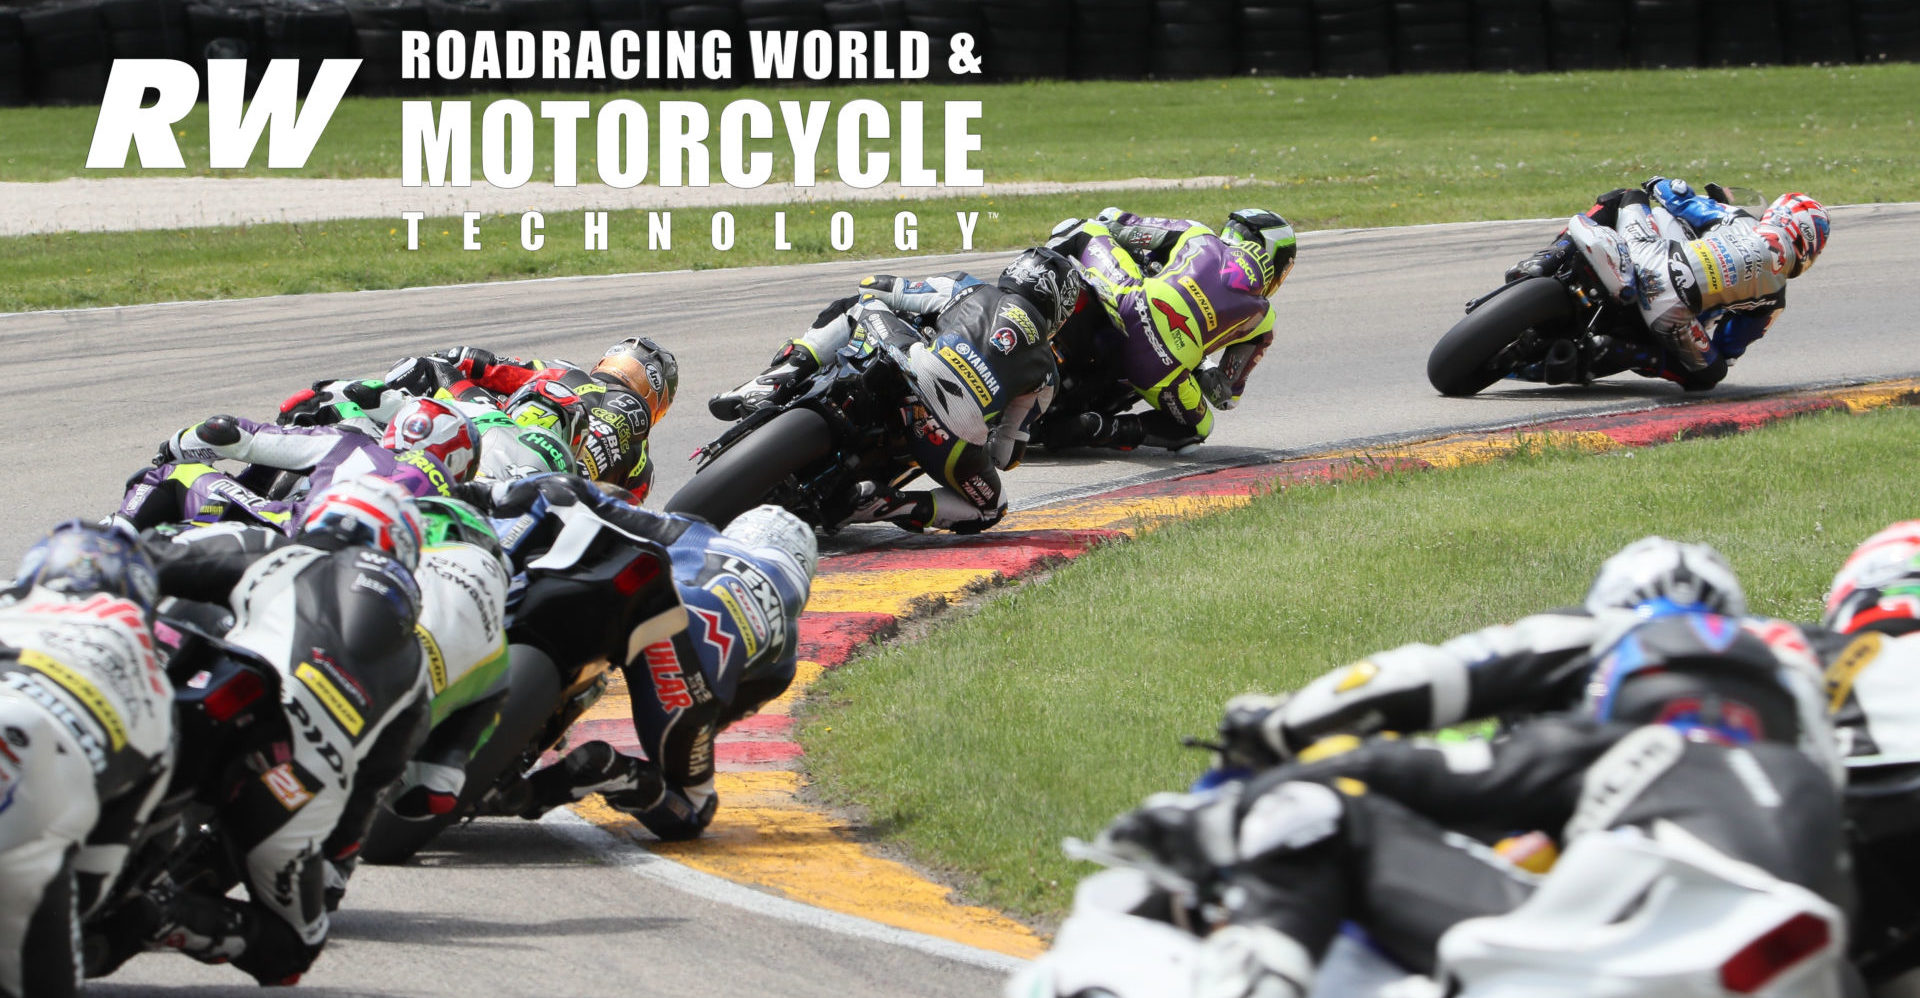 With race leader Bobby Fong already out of frame to the right, Sean Dylan Kelly heads Hayden Gillim, Josh Hayes, PJ Jacobsen, Richie Escalante, and the rest of the field during MotoAmerica Supersport Race Two at Road America in 2019. Photo by Brian J. Nelson.